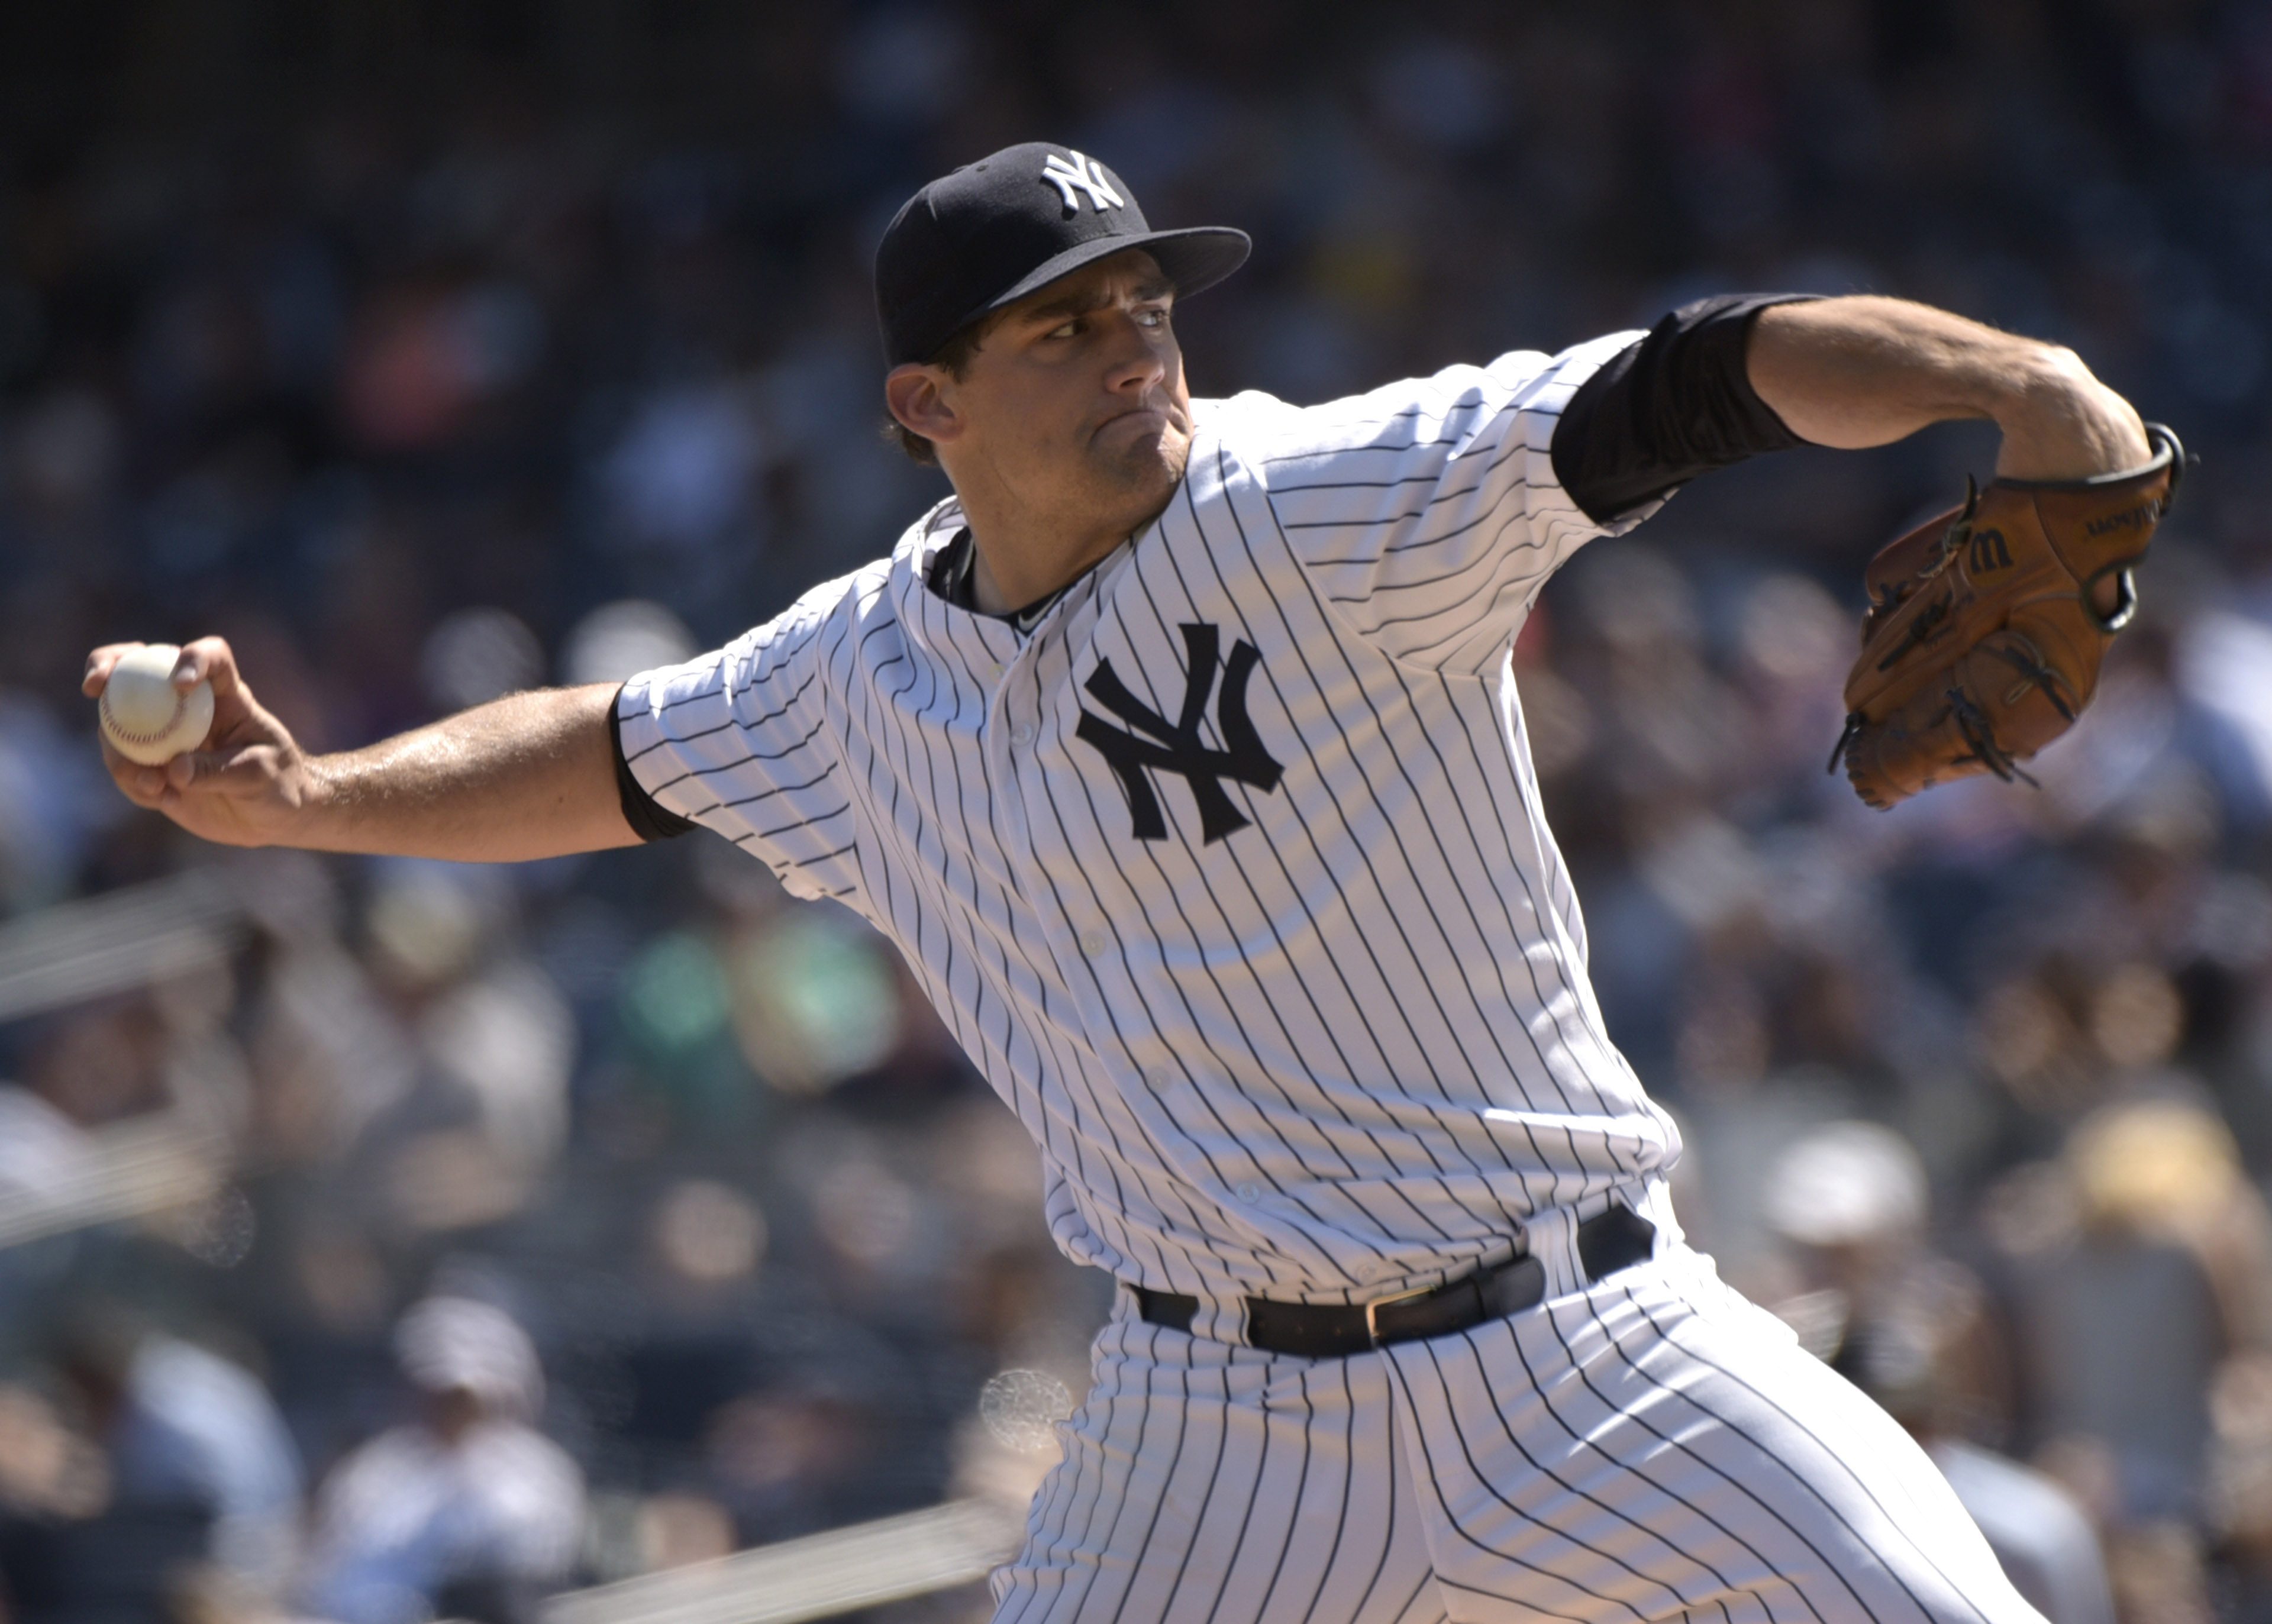 New York Yankees pitcher Nathan Eovaldi delivers the ball to the Tampa Bay Rays  during the first inning of a baseball game Saturday, Sept. 5, 2015, at Yankee Stadium in New York. (AP Photo/Bill Kostroun)